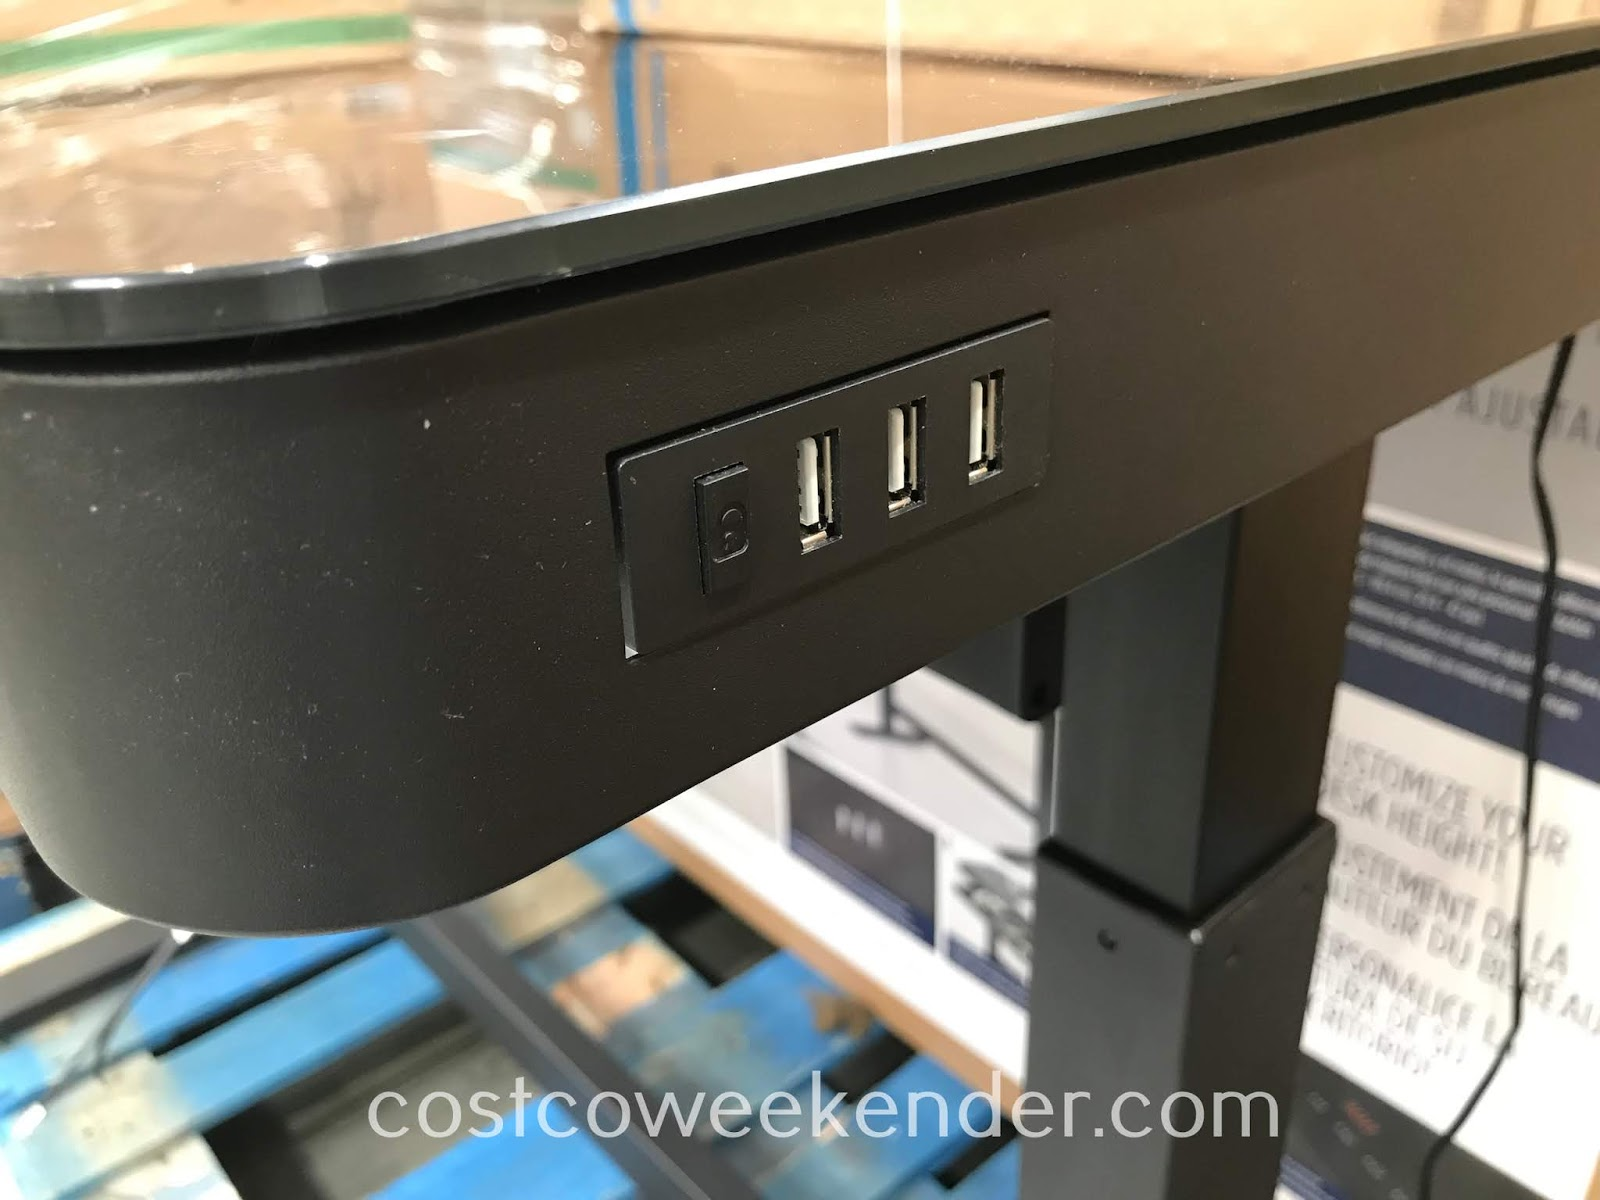 The Tresanti Adjustable Height Desk features convenient USB ports for your devices